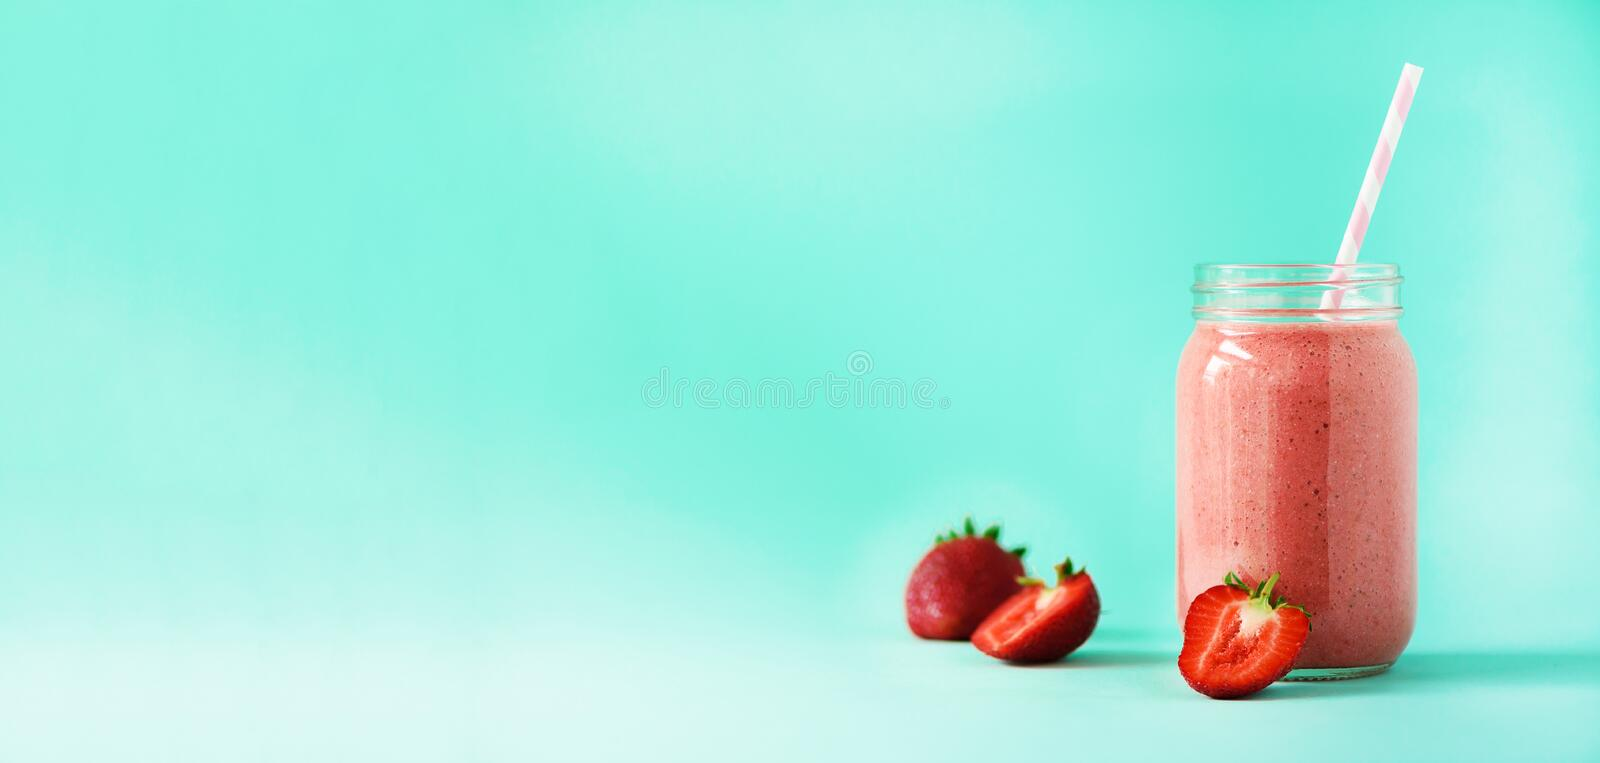 Bottle with vegan strawberry smoothie on blue background with copy space. Banner. Summer food concept, vegan diet. Pink royalty free stock photography